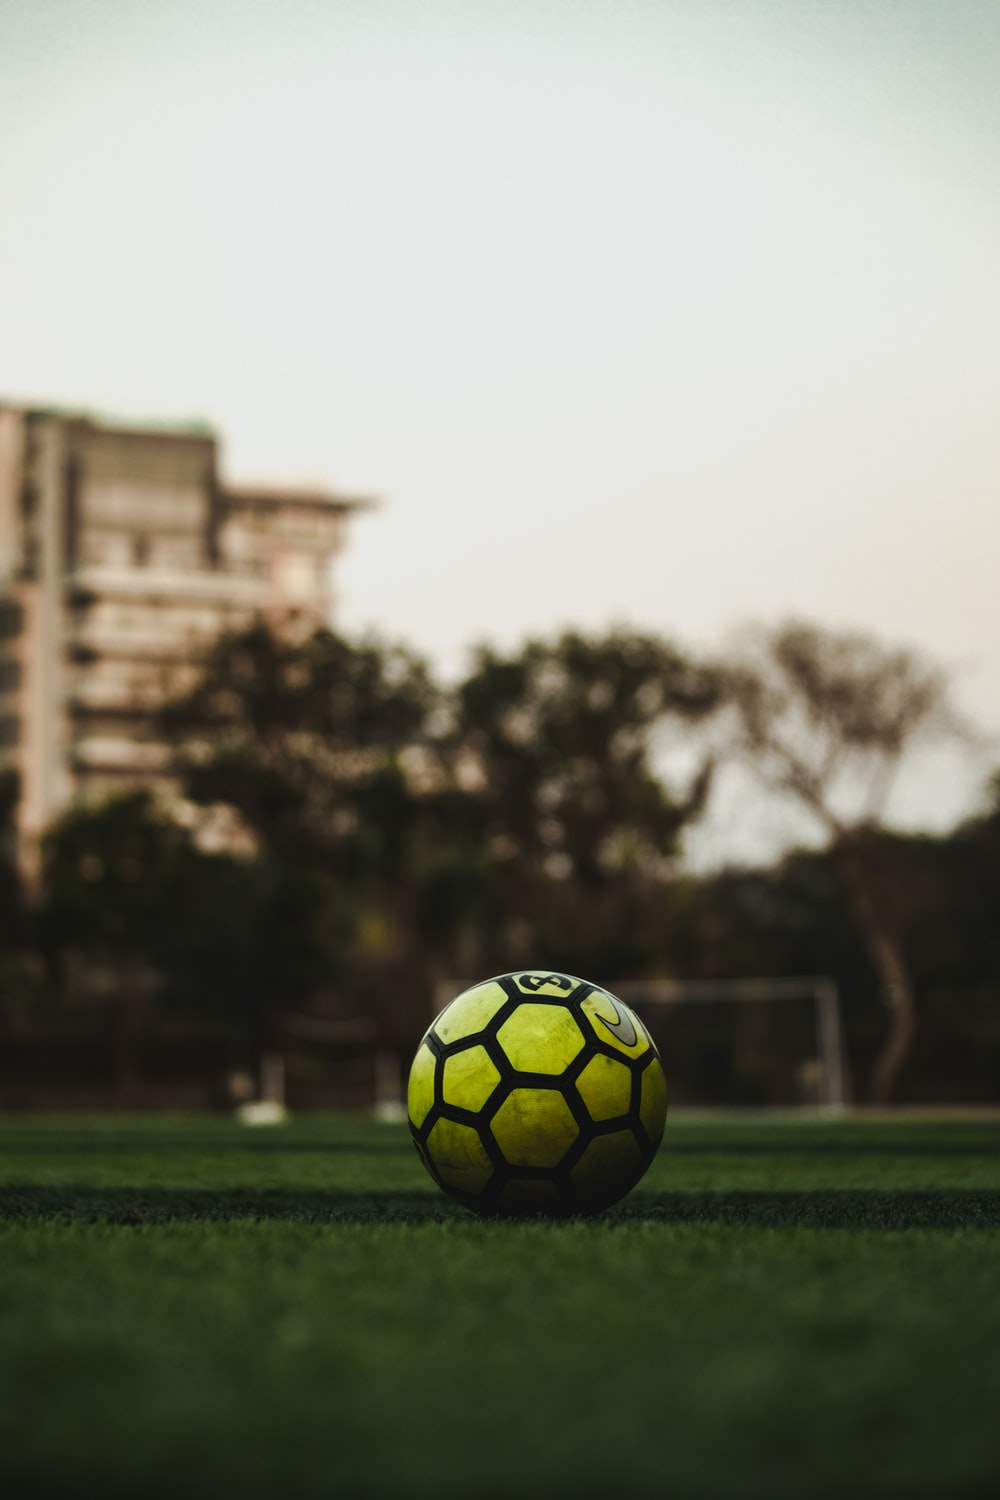 yellow and black soccer ball on field during daytime